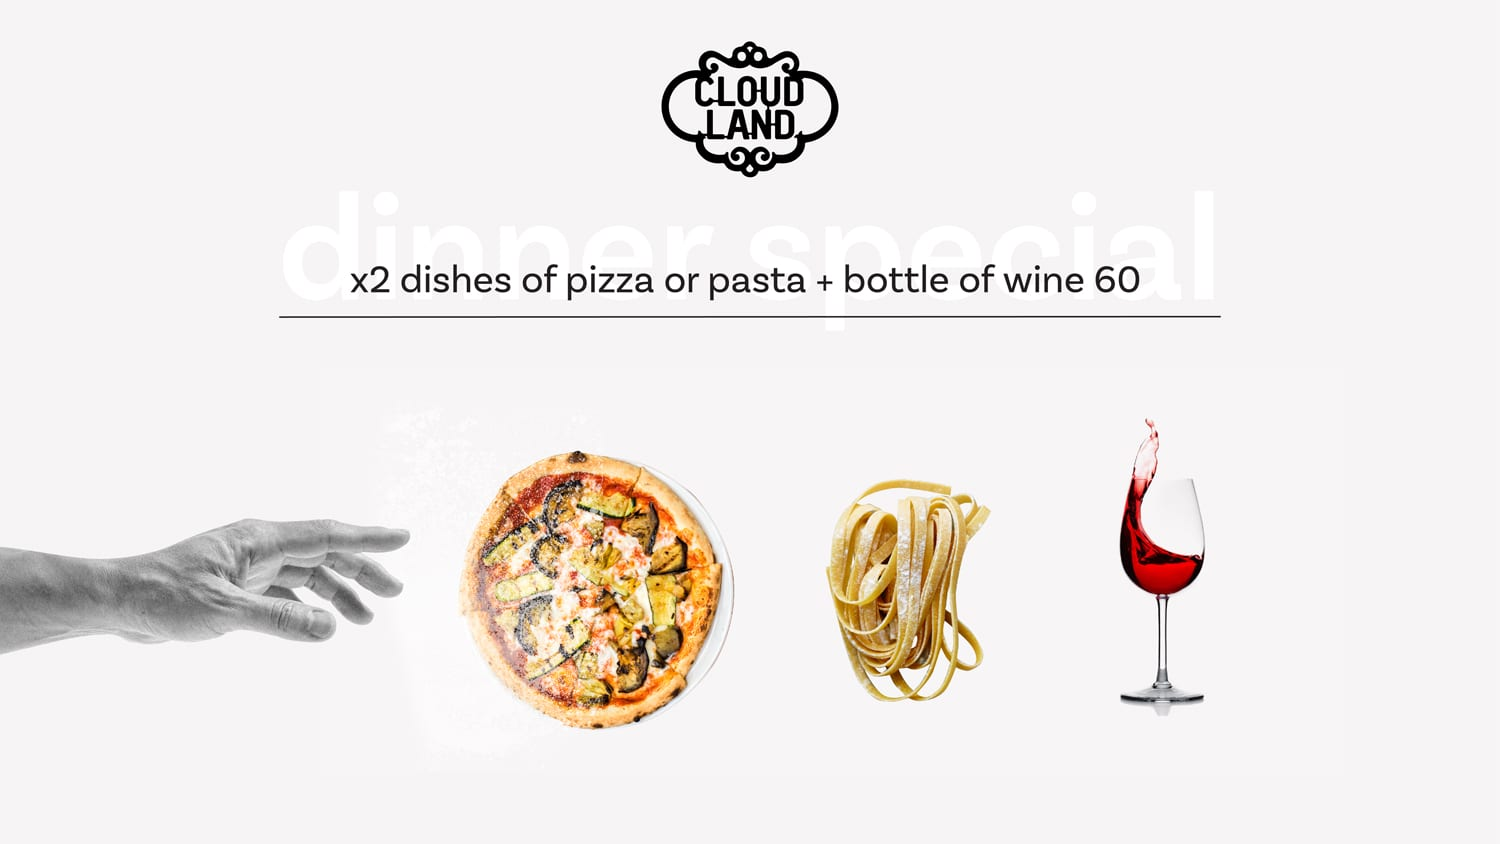 Cloudland Thursday Pizza and Pasta and Wine